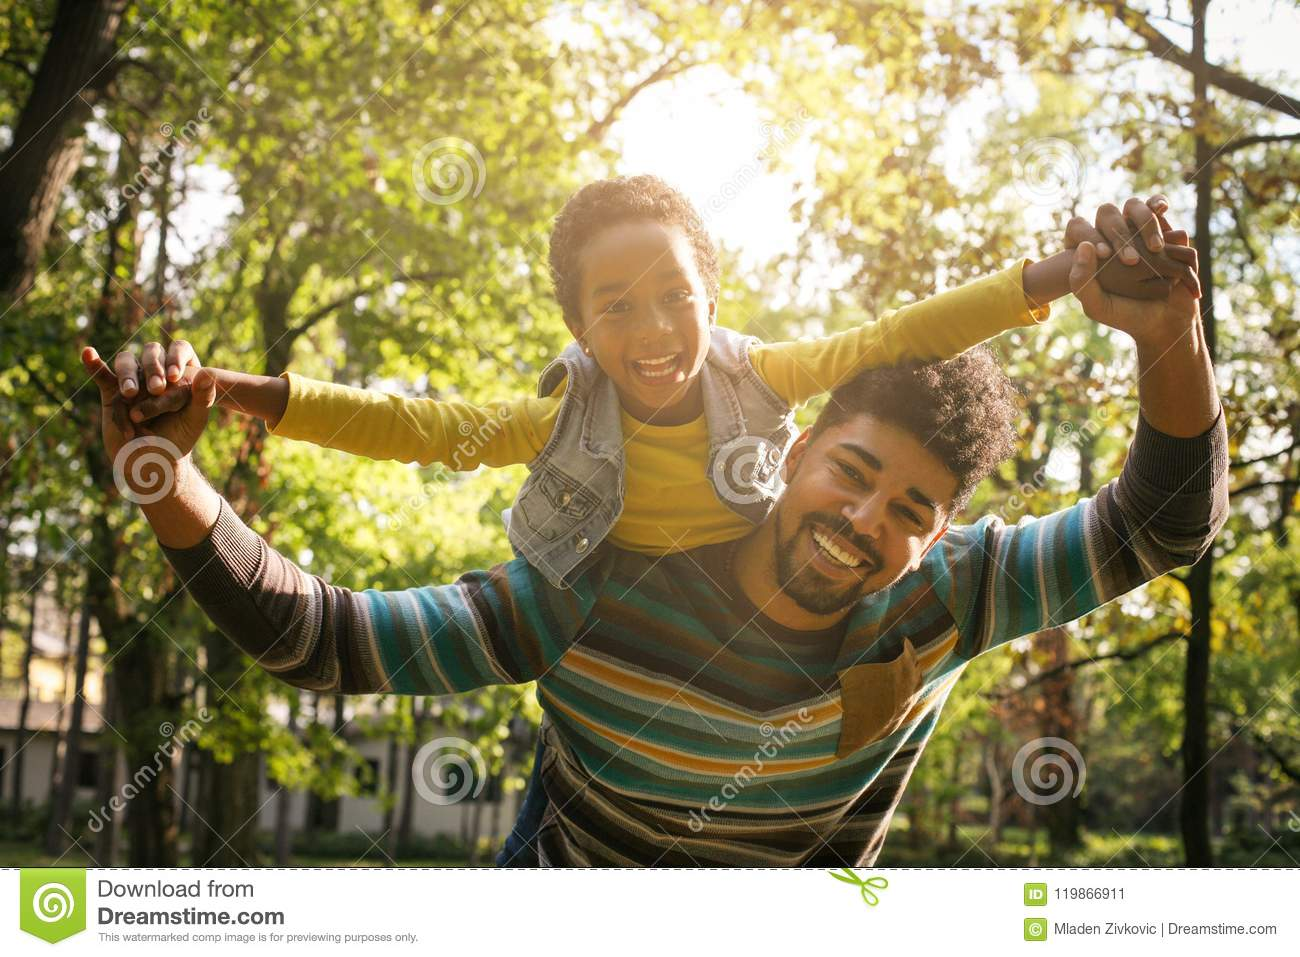 Smiling African American father carrying his daughter on piggyback and holding hands.